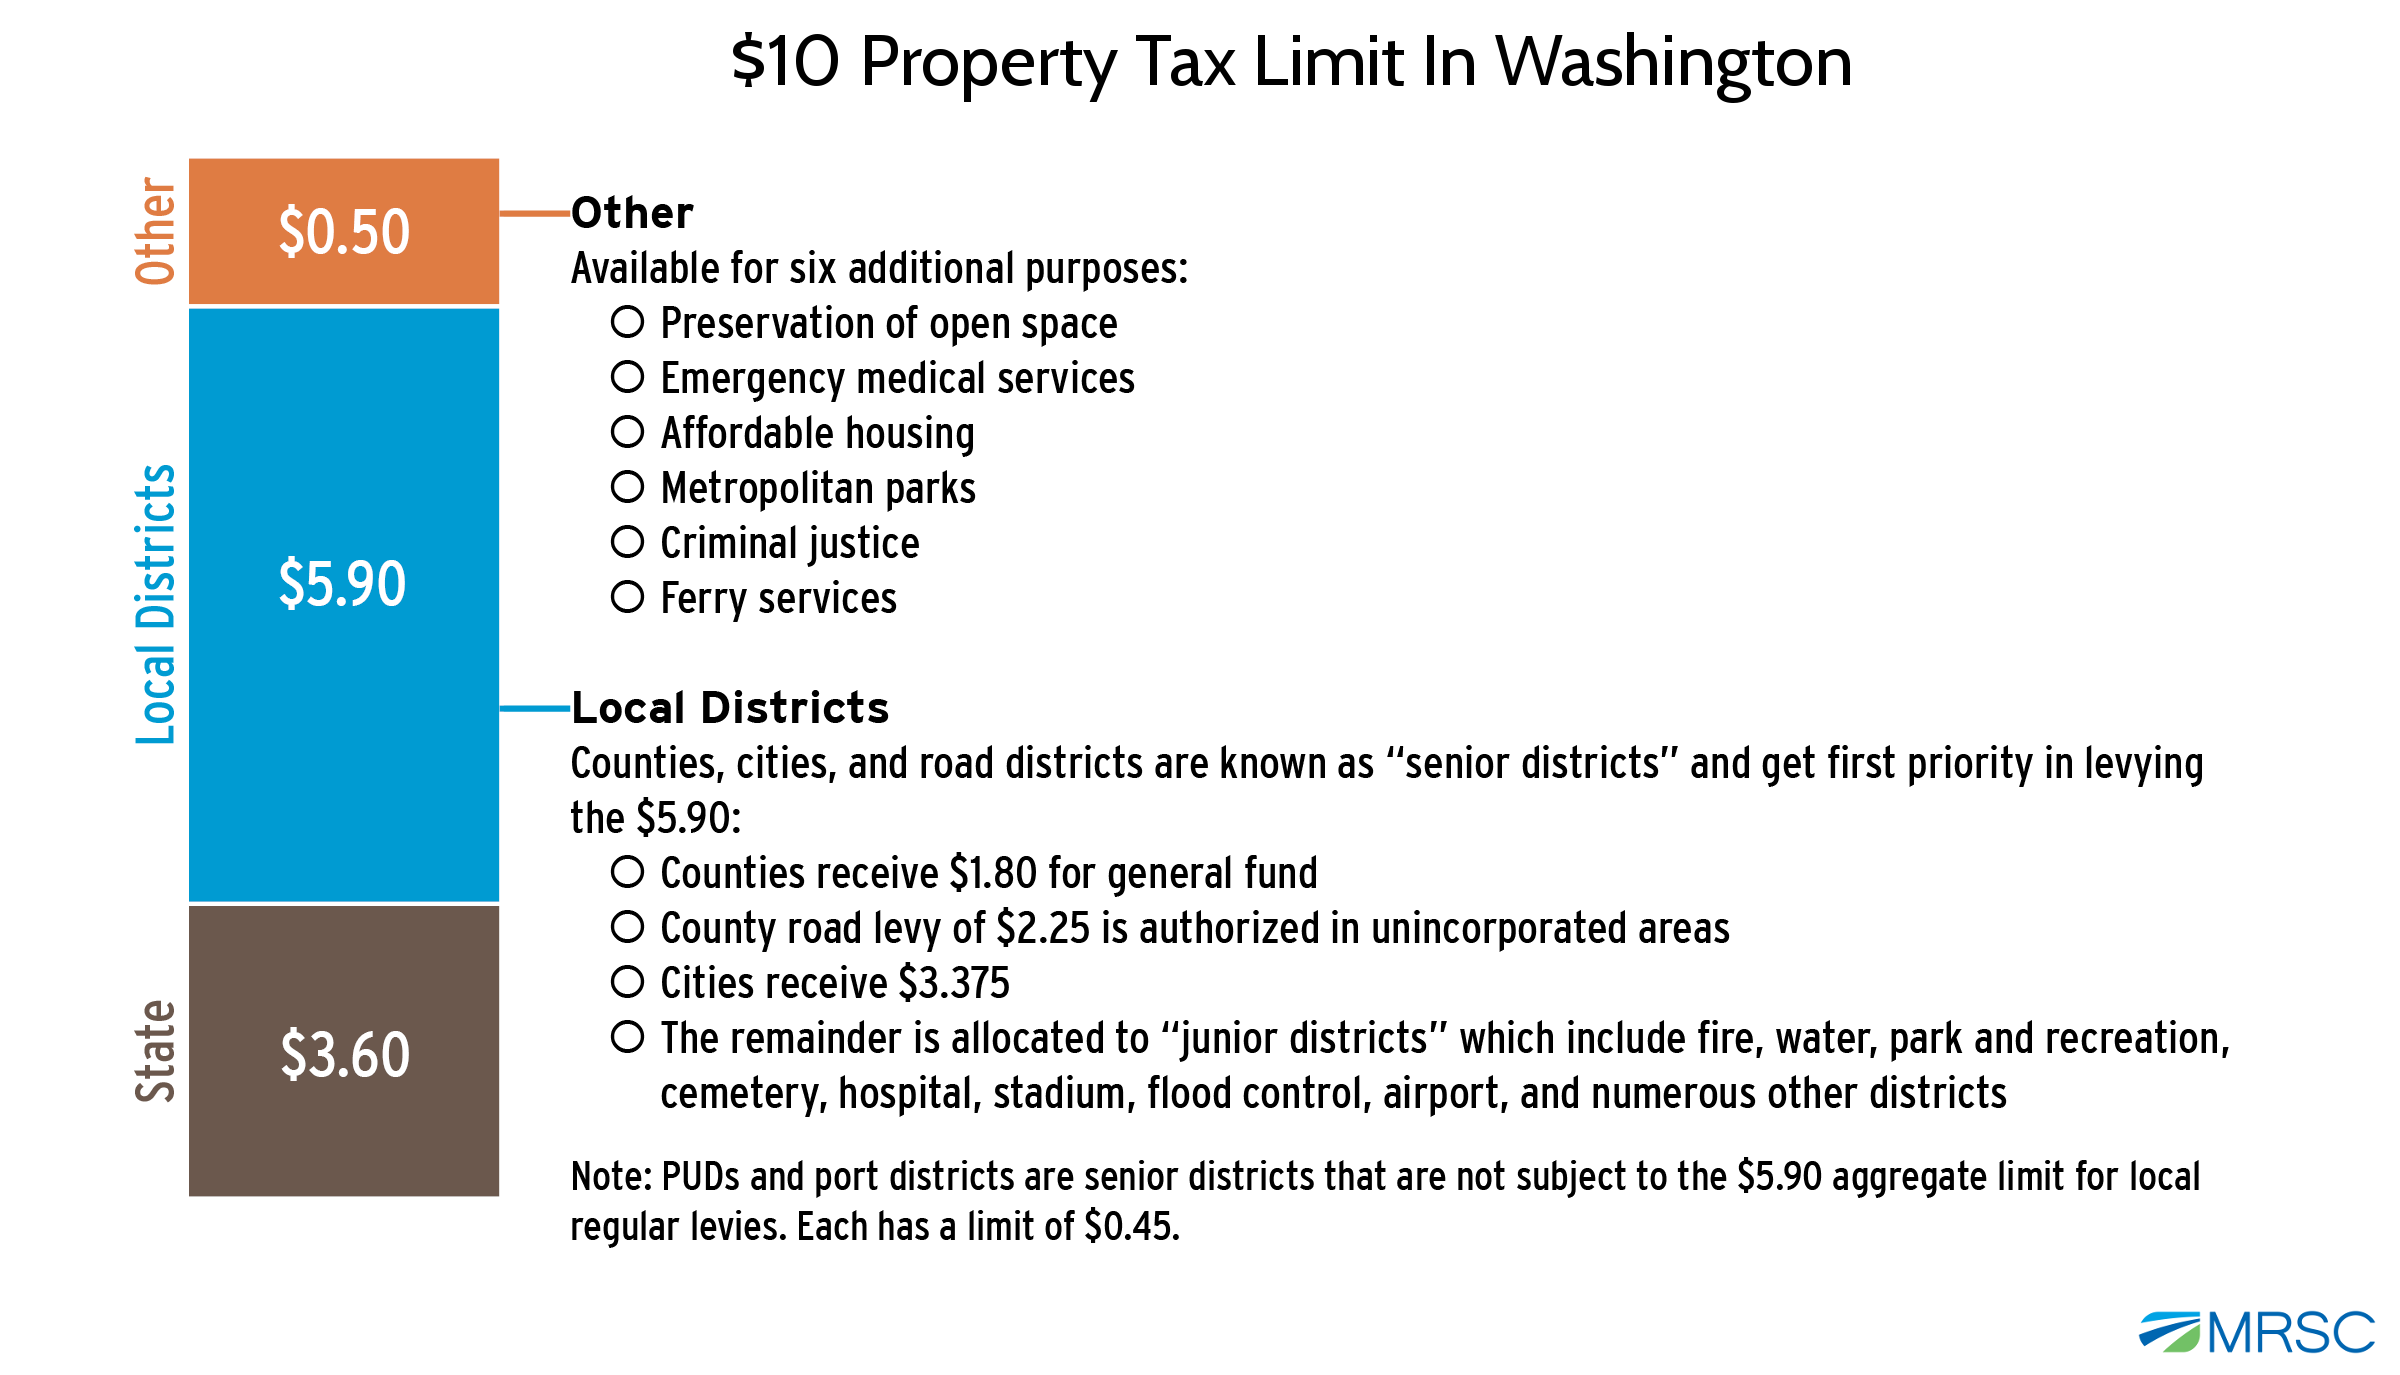 MRSC - Property Tax in Washington State